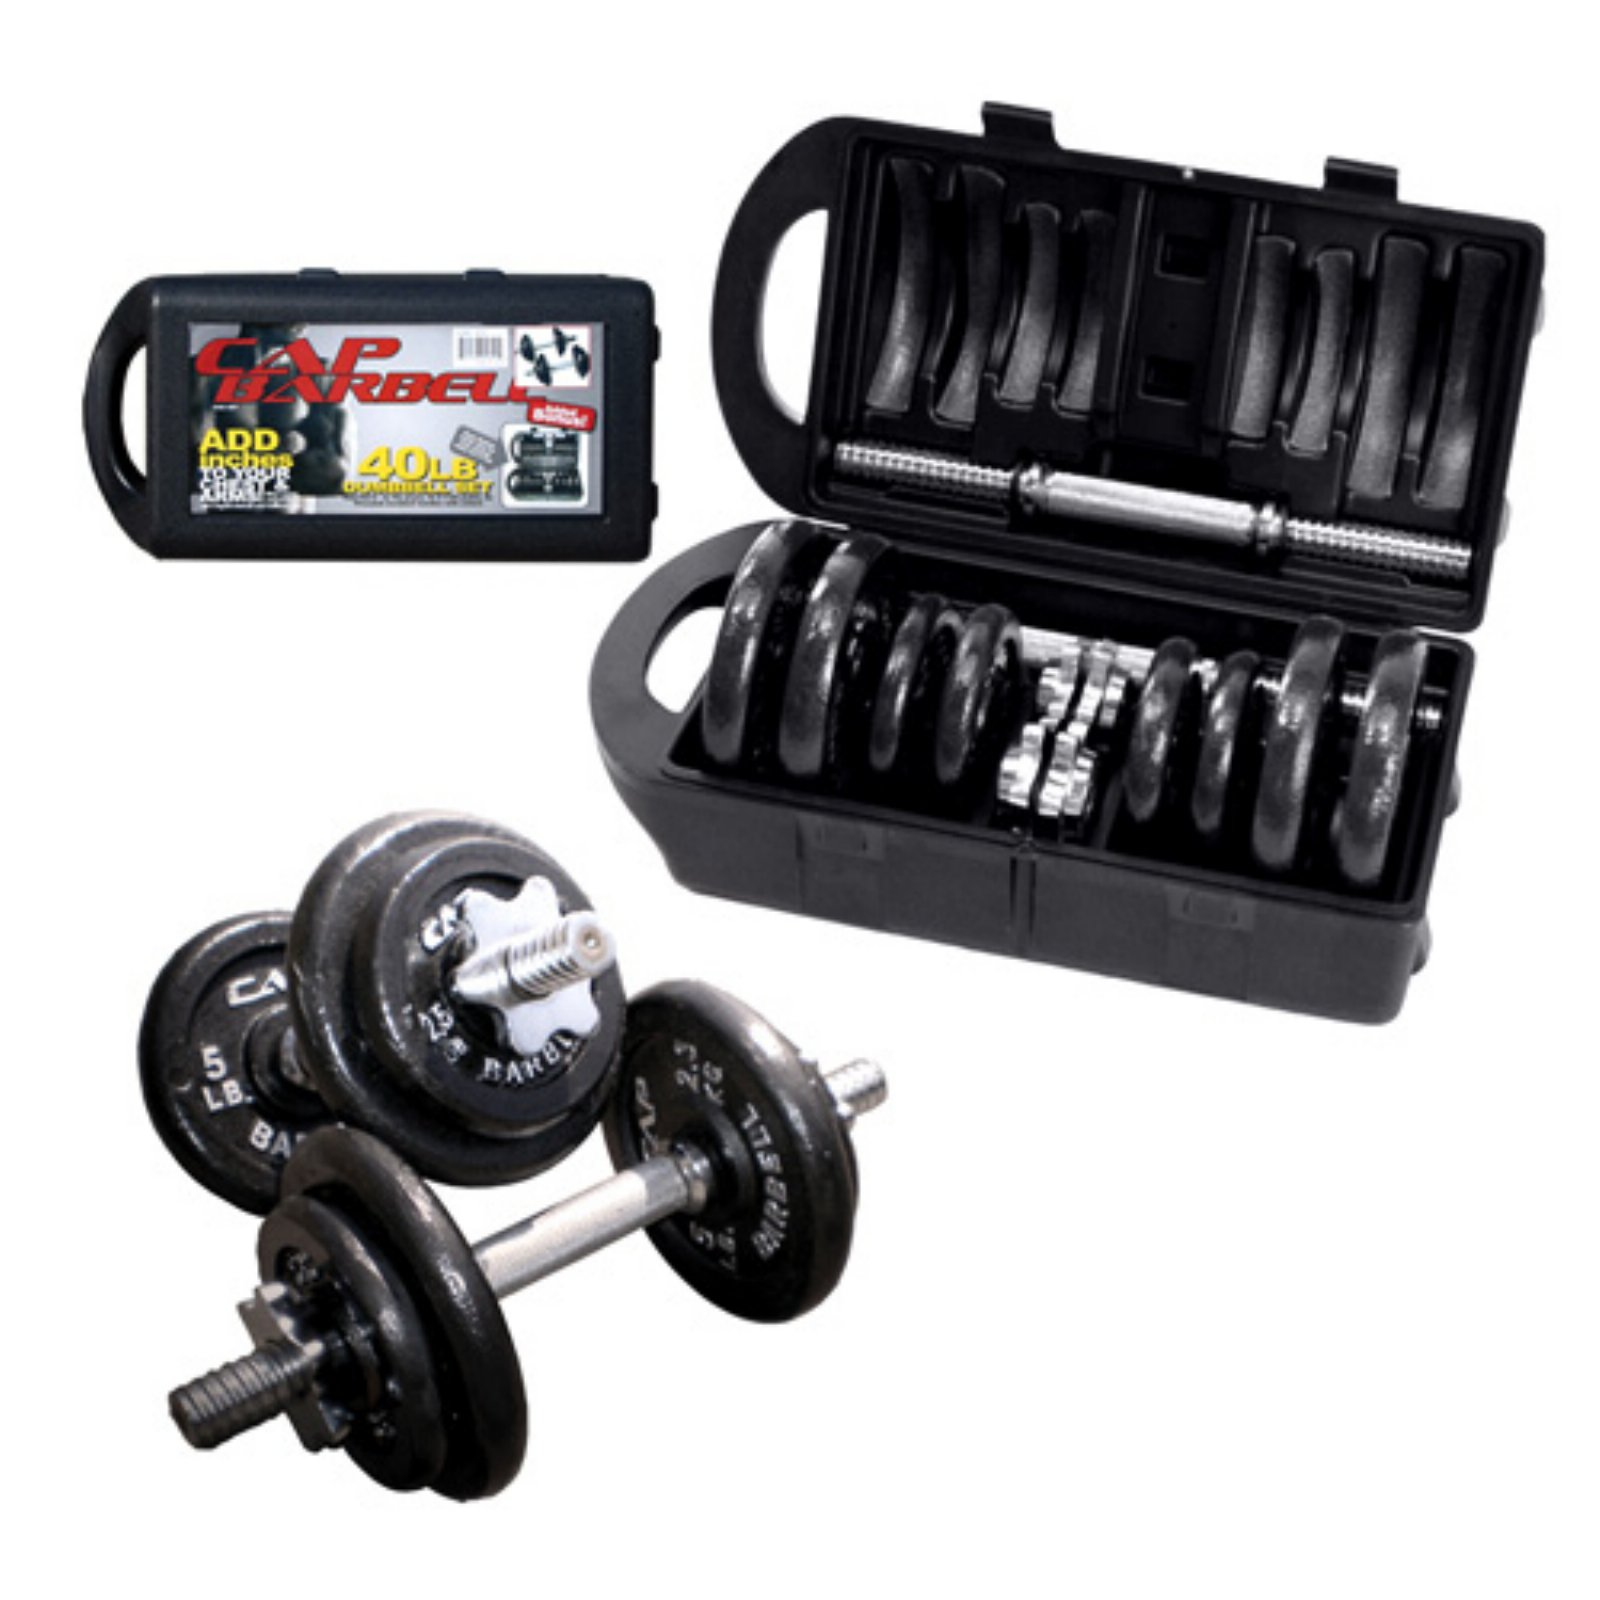 CAP Barbell RSWB-40TP 40 lb. Dumbbell Set by Cap Barbell